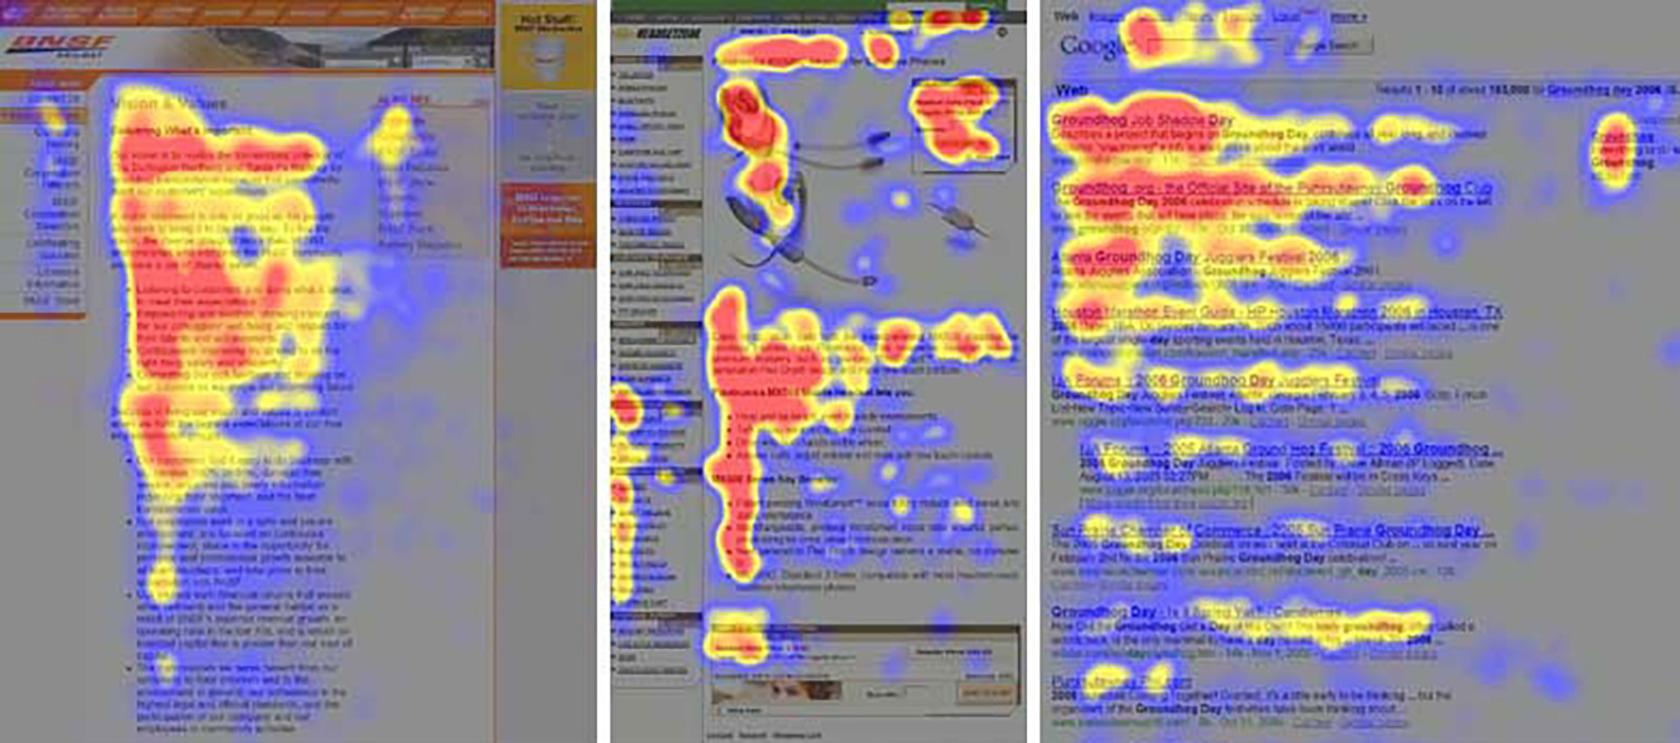 Eyetracking study F-pattern scanning and reading content on websites one of the many interaction design principles